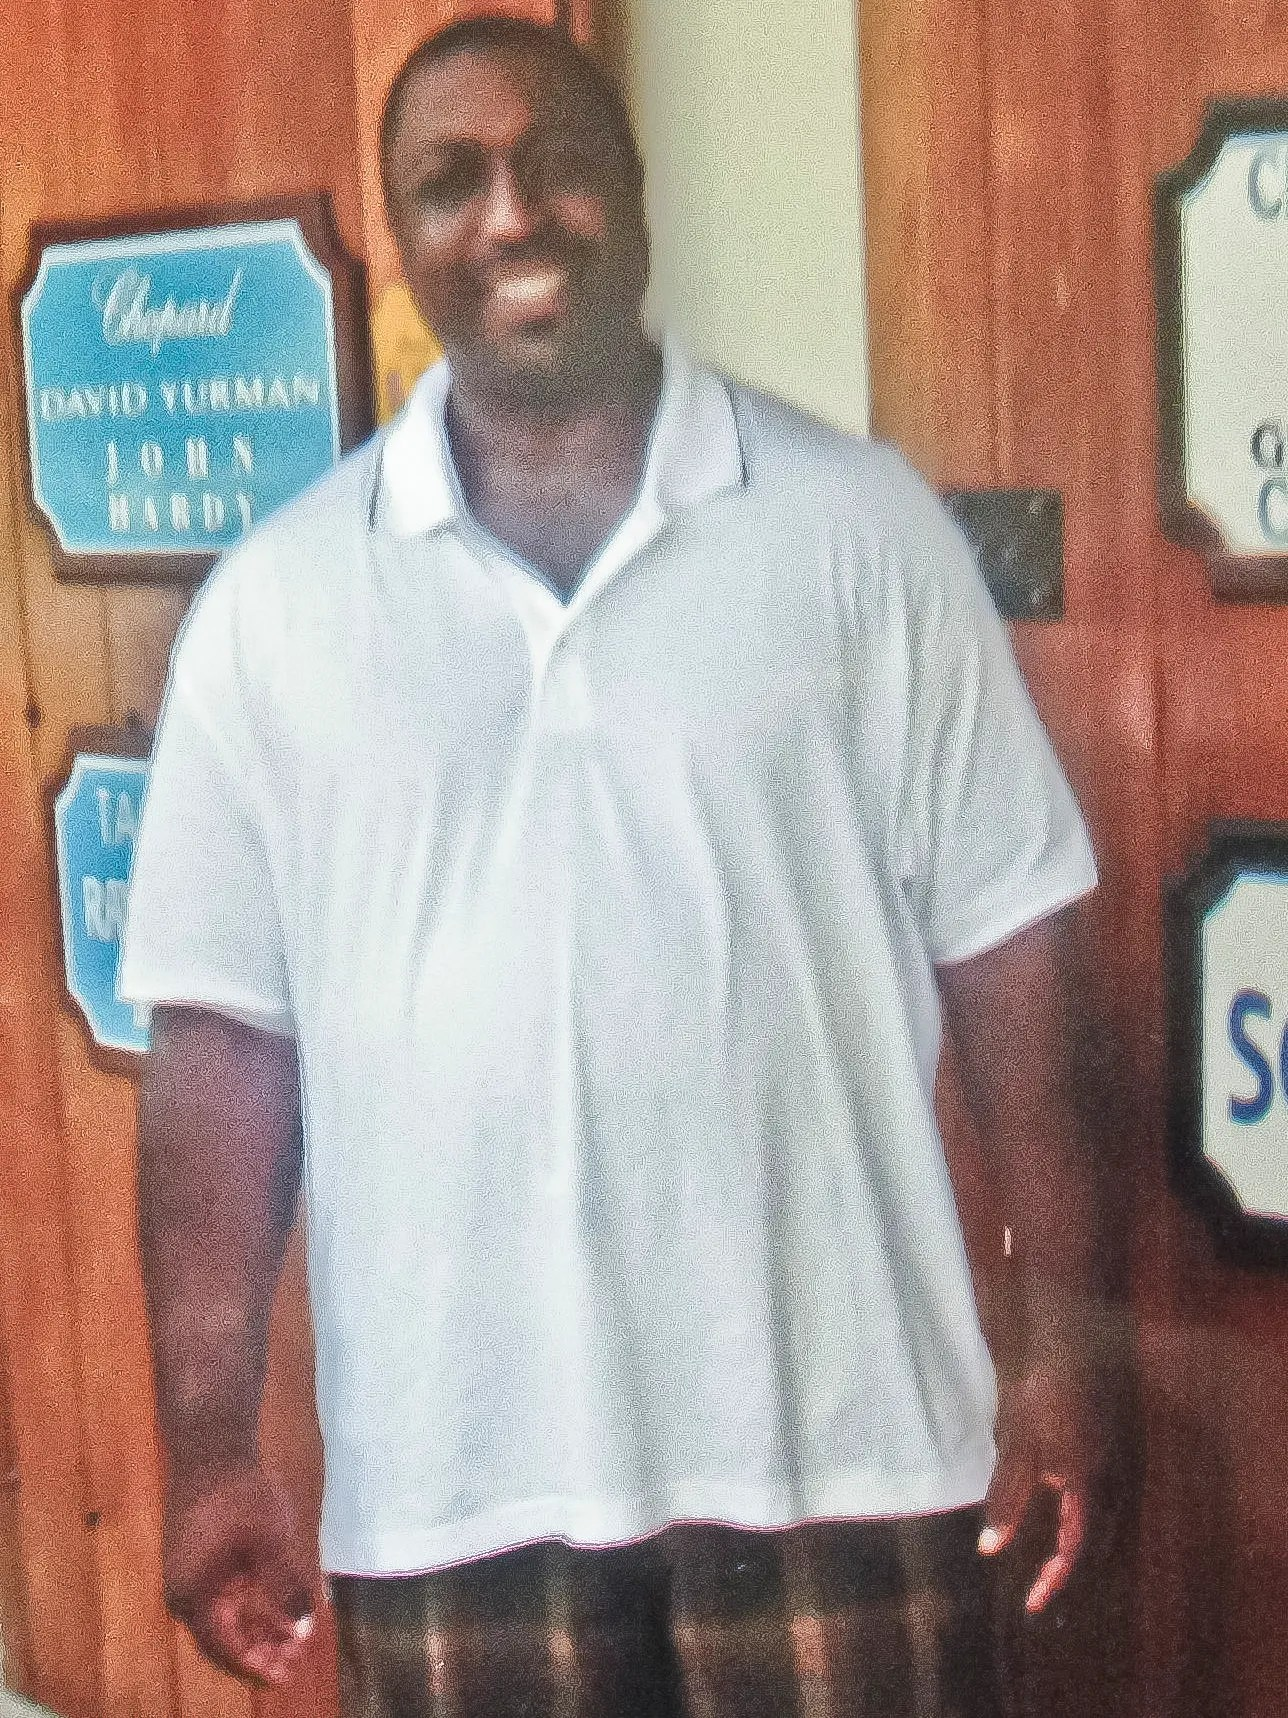 eric garner No charges in NYC chokehold death; federal inquiry launched